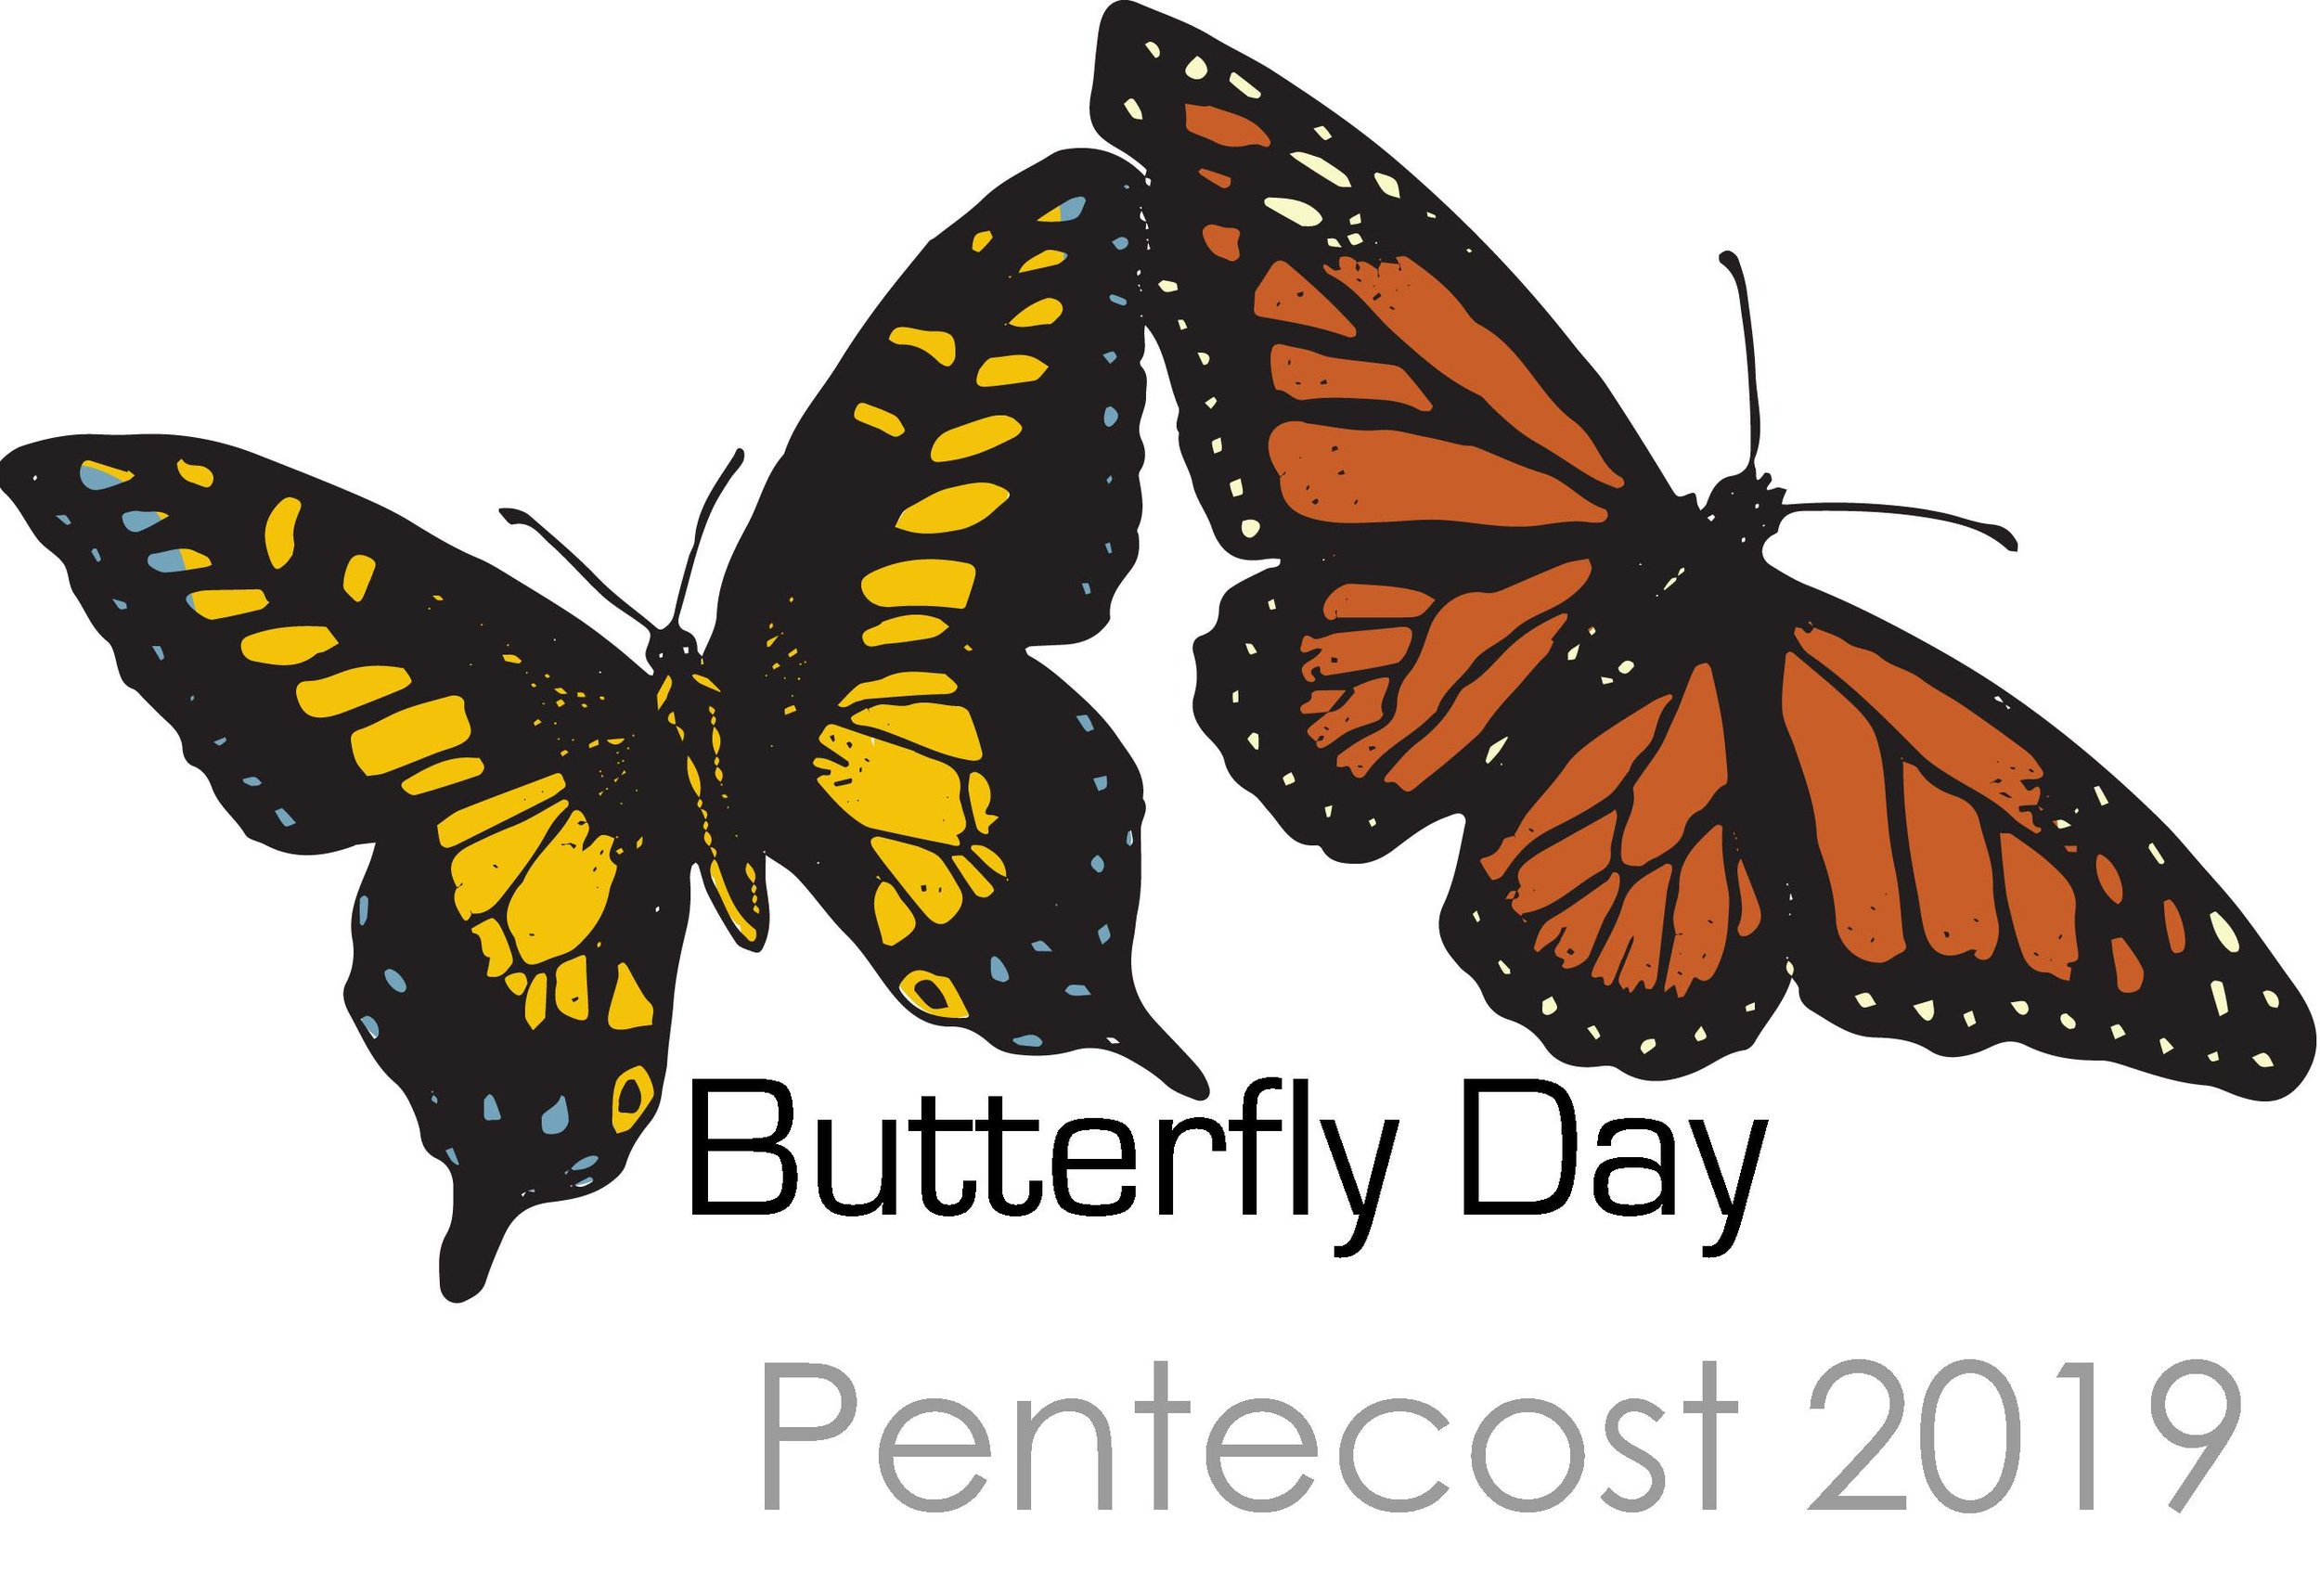 June 9, 2019 PentecostButterfly Day Celebration - Join Grace Church On Sunday, June 9, 2019 as we celebrate Pentecost. After the 9:30 am Holy Eucharist, join us on the church lawn for a fun time for all ages. There will be food of sale from the soon to open Gita's Mobile Cafe. We will have crafts, facepainting and more. Enjoy an afternoon of fun and fellowship.